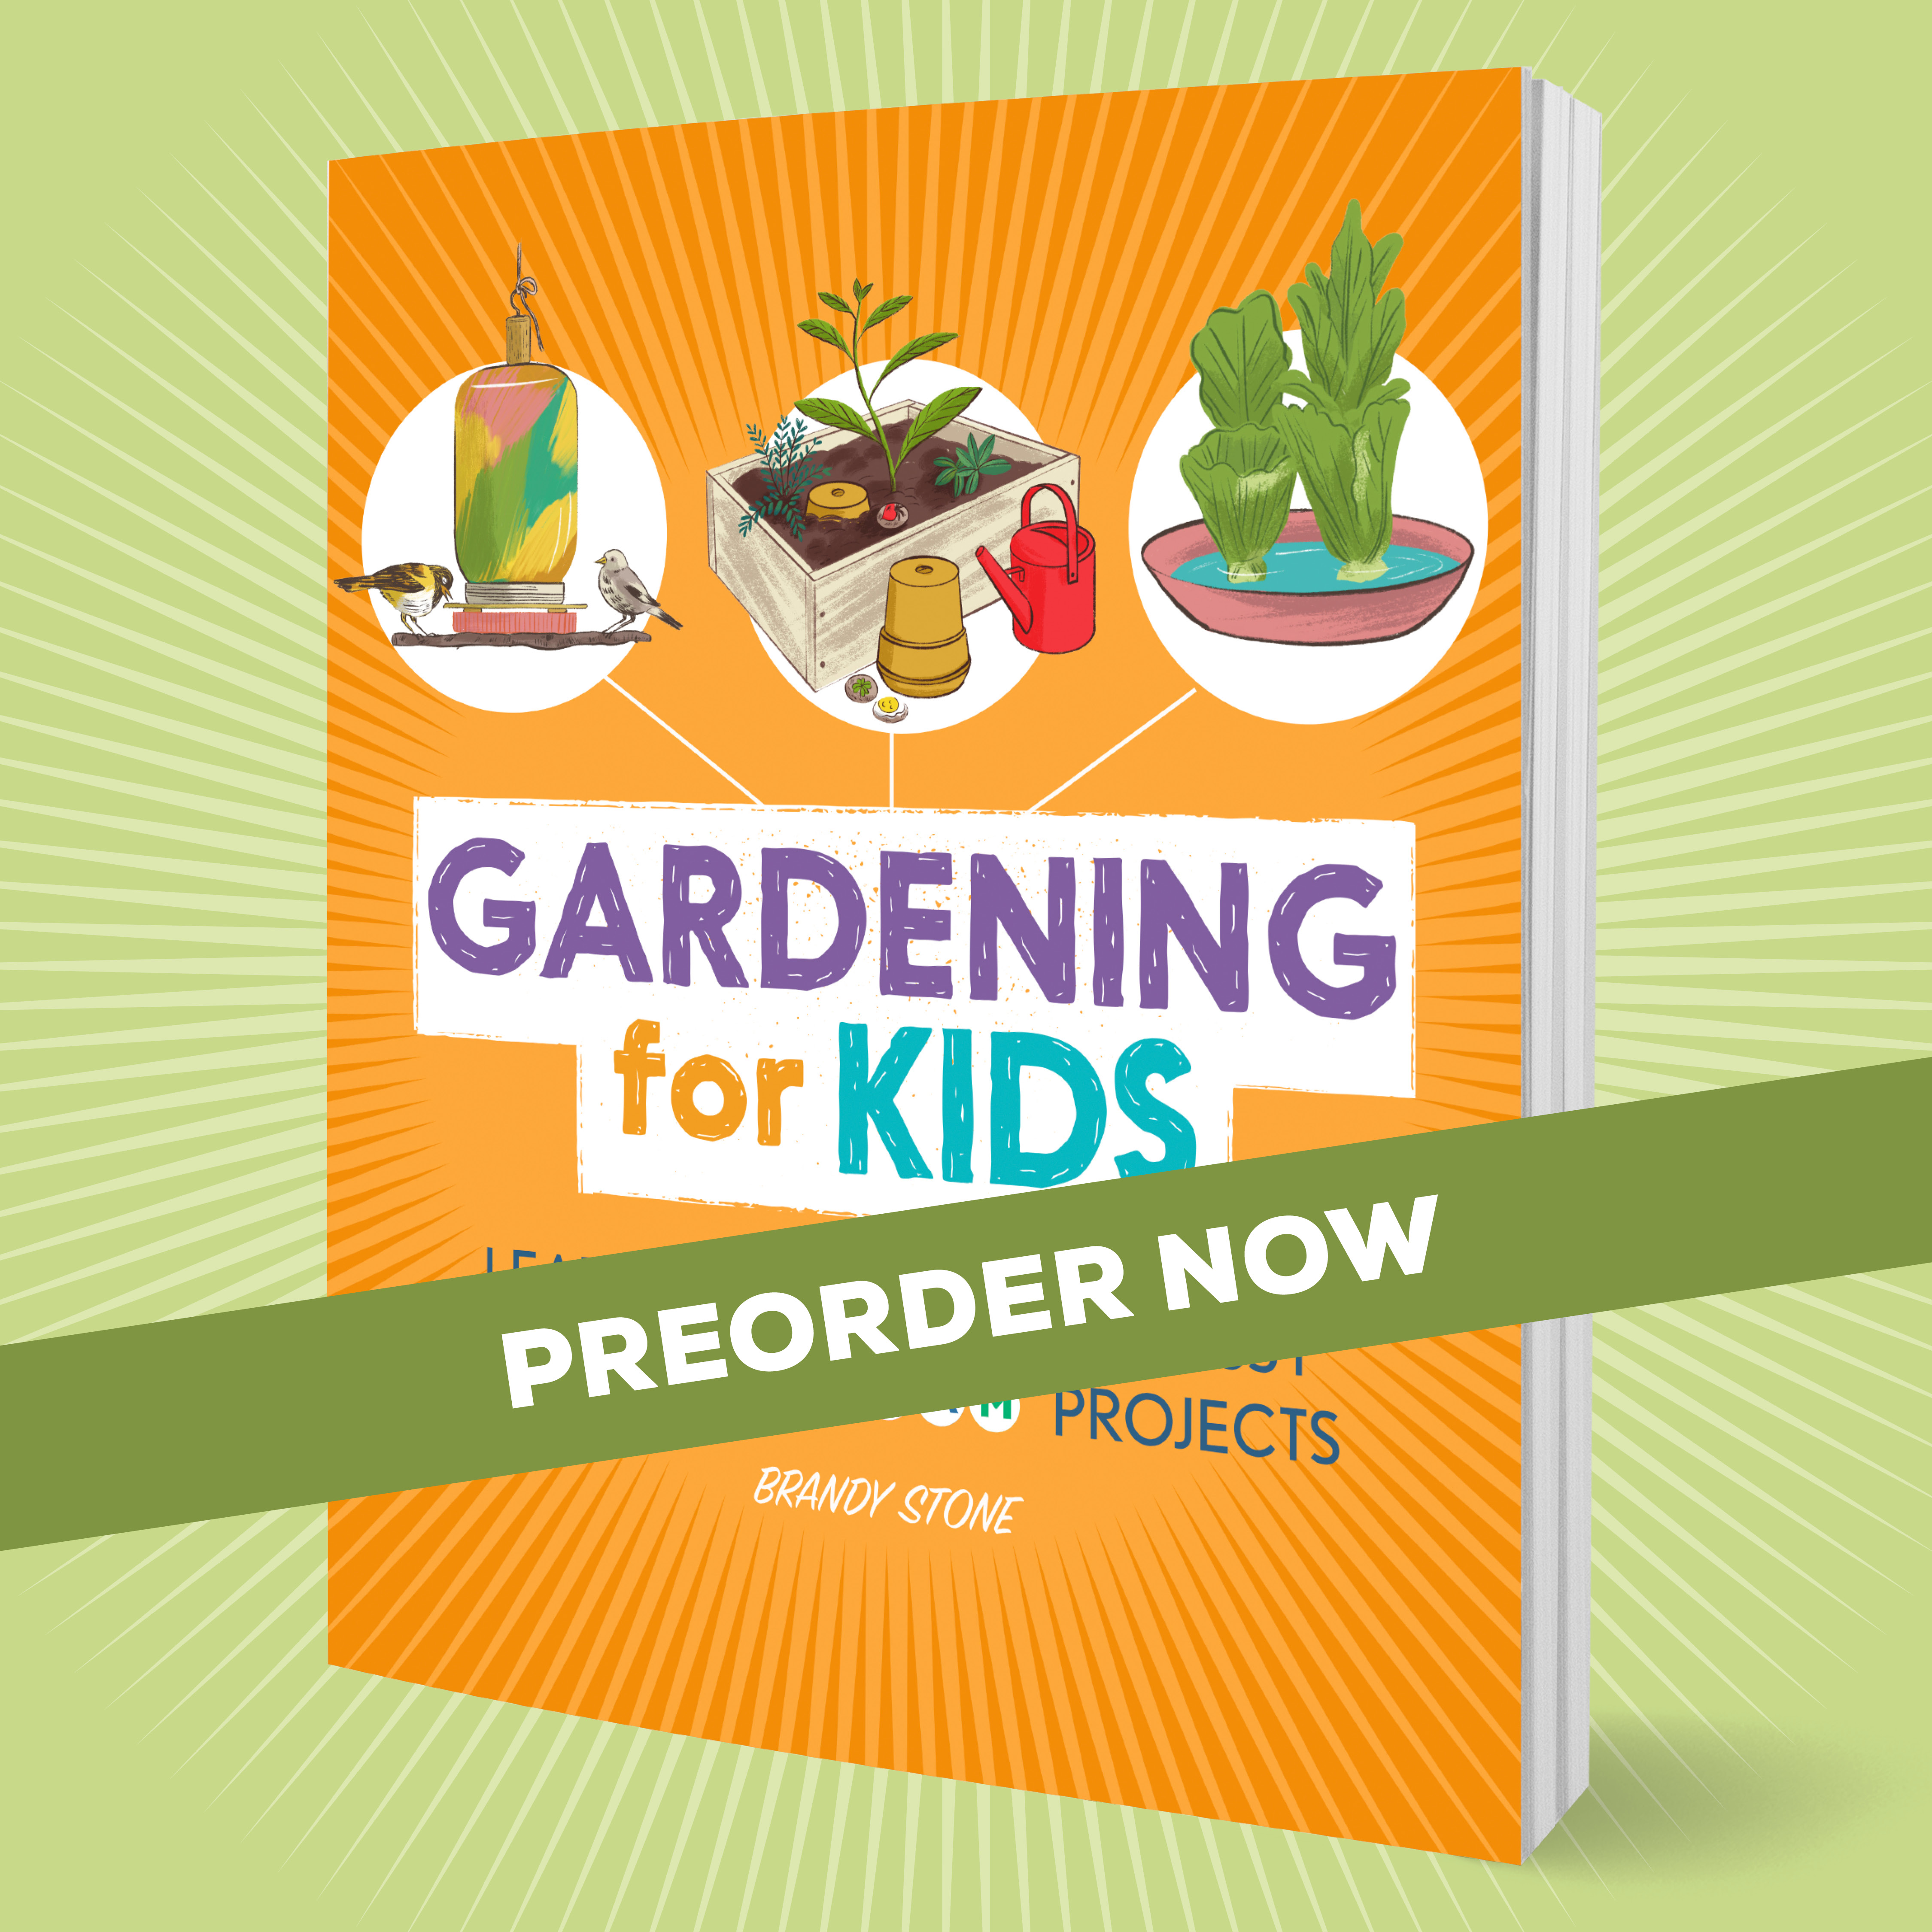 Gardening for Kids Preorder